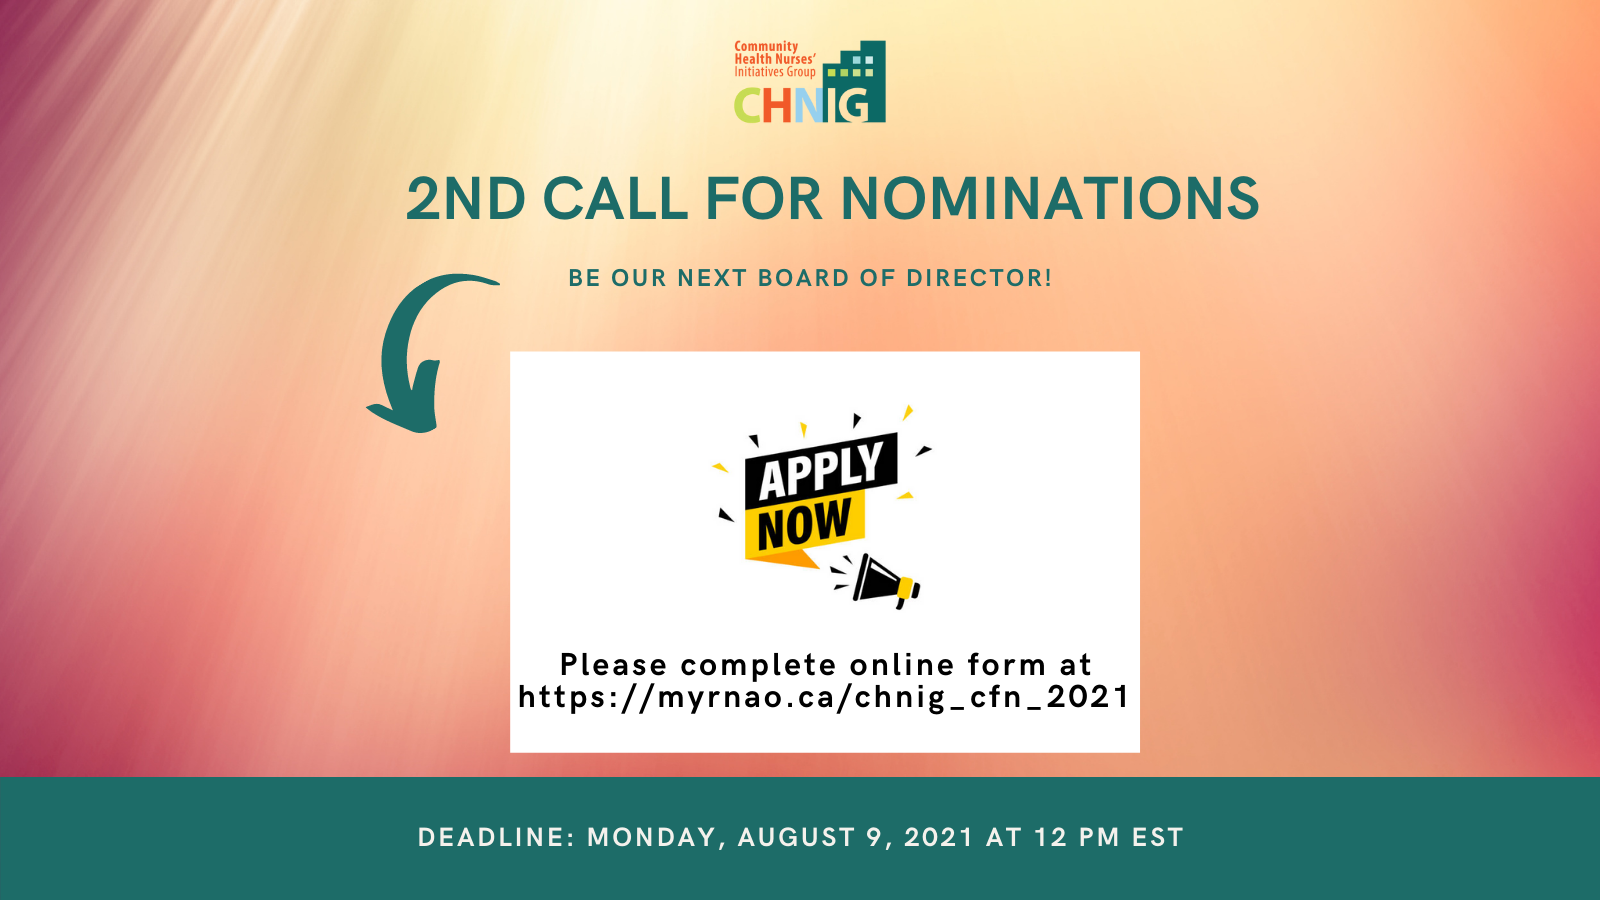 CHNIG 2nd Call for Nominations